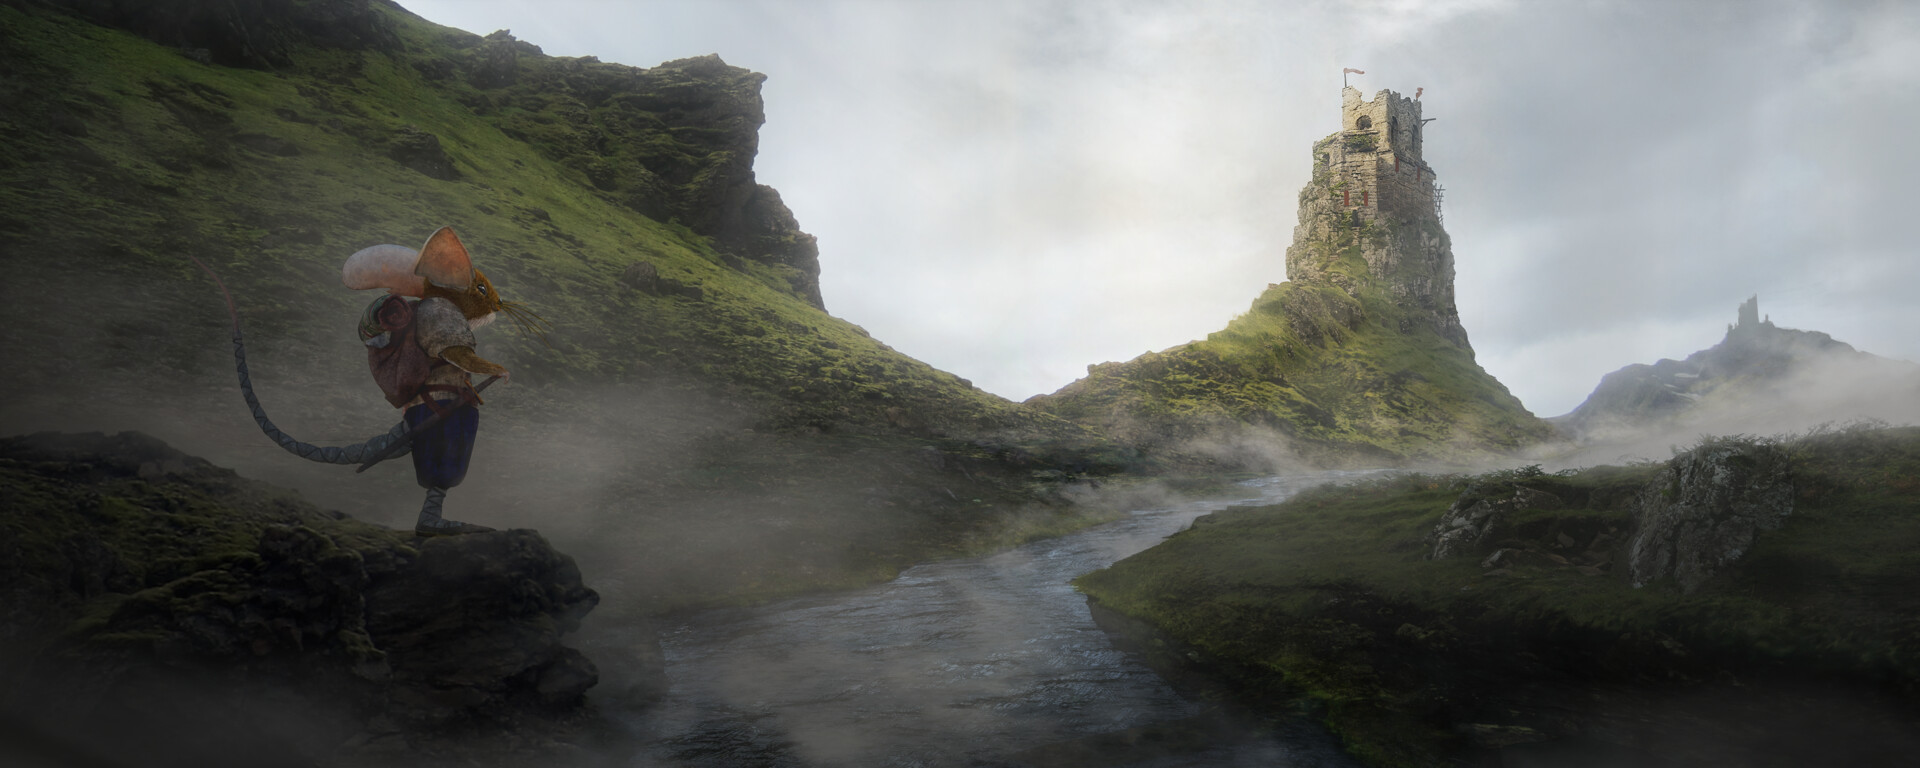 Jordi van hees mr whiskers explores the world part 3 overcast rocky tundra beauty render 006 small